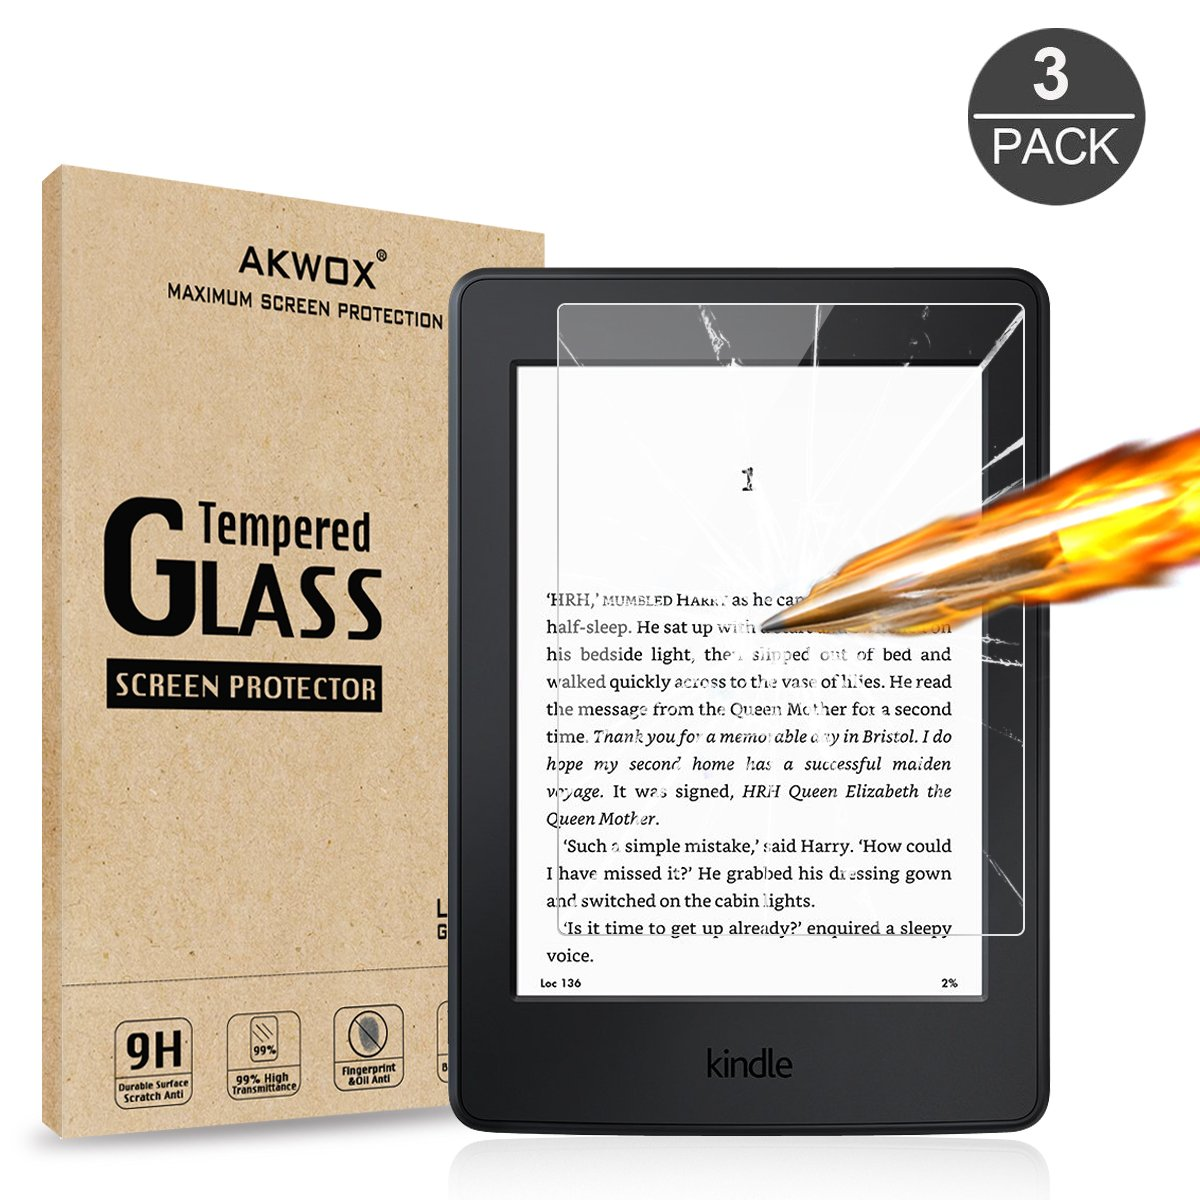 (3-Pack) Tempered Glass Screen Protector for Kindle Paperwhite, Akwox [0.3mm 2.5D 9H ] Anti-fingerprint Premium Screen Protector for Kindle, Kindle Paperwhite, Kindle Paperwhite 3 and Kindle Touch